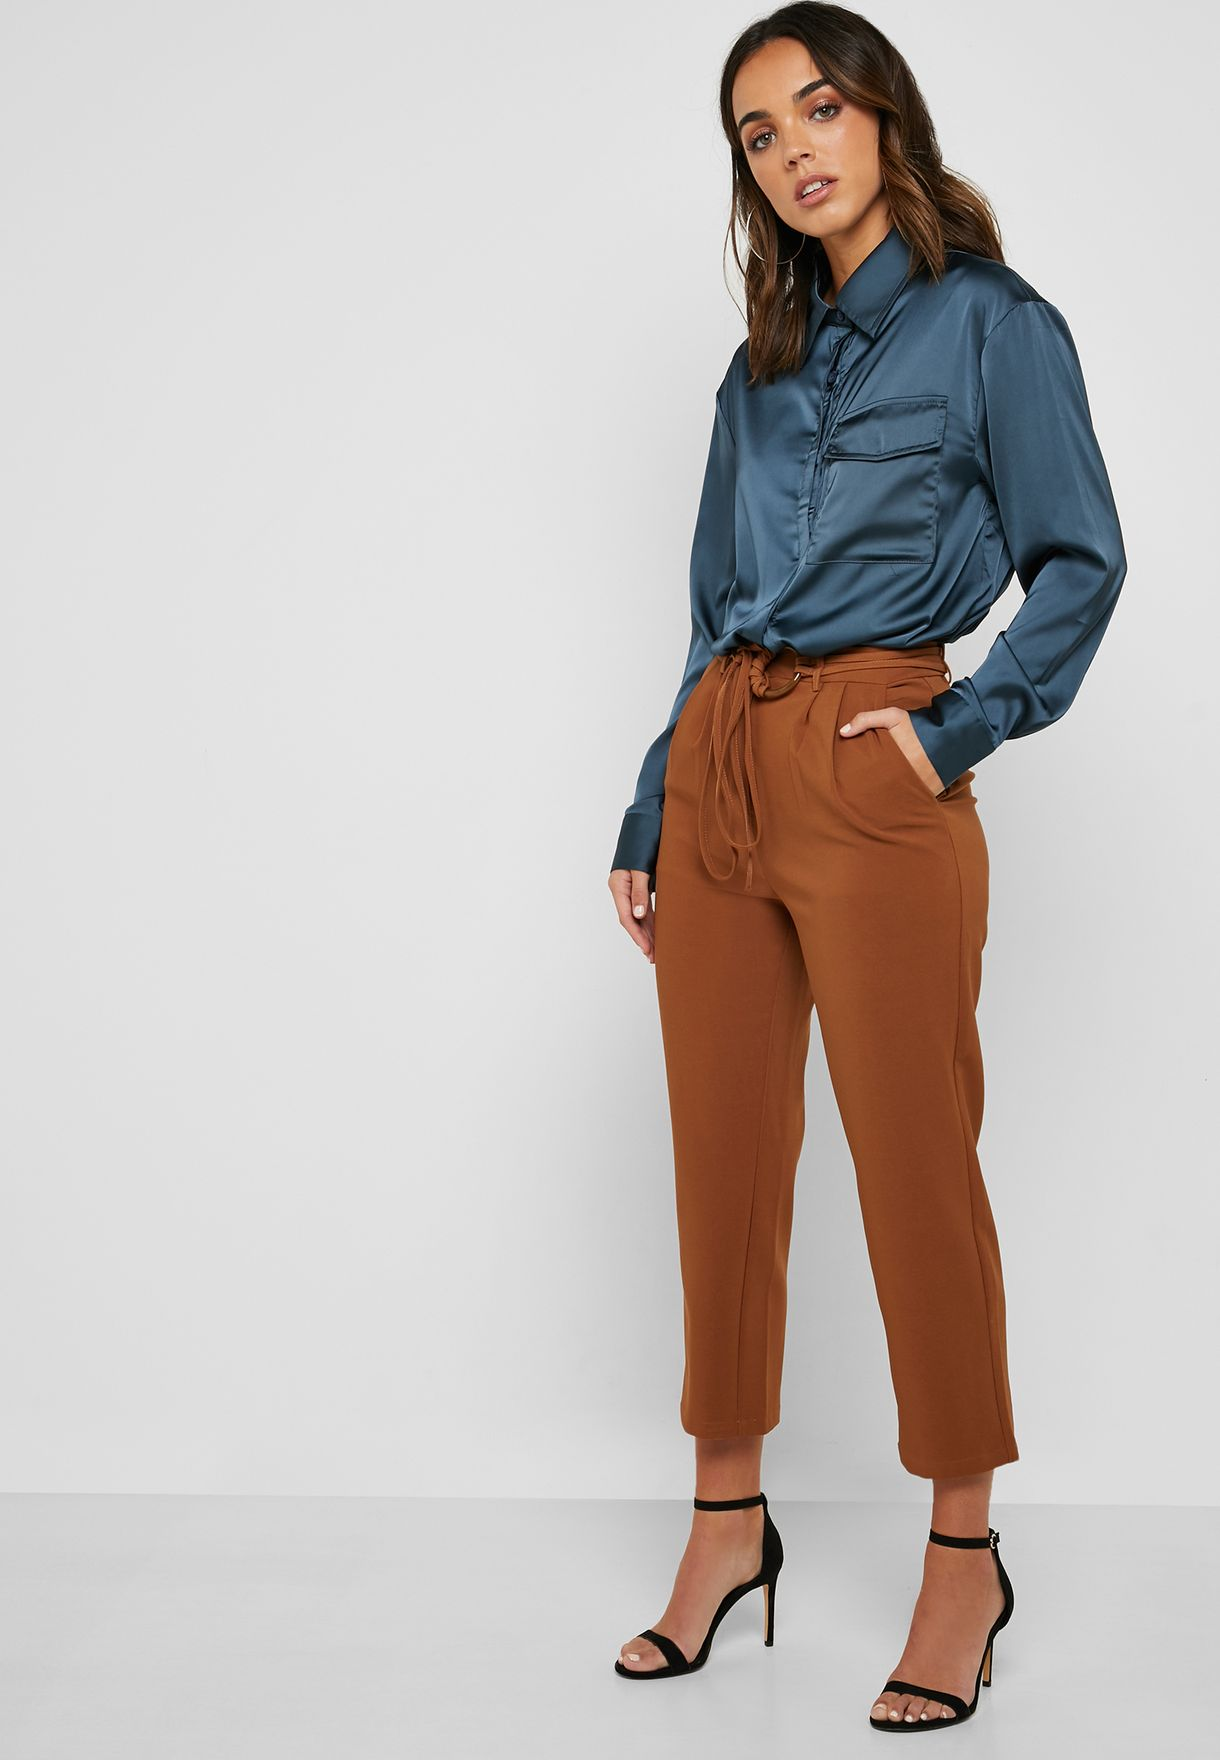 cb5d4b5751cb80 Shop Ella Brown Ring Belted Cropped Pants Y8297 for Women in UAE ...